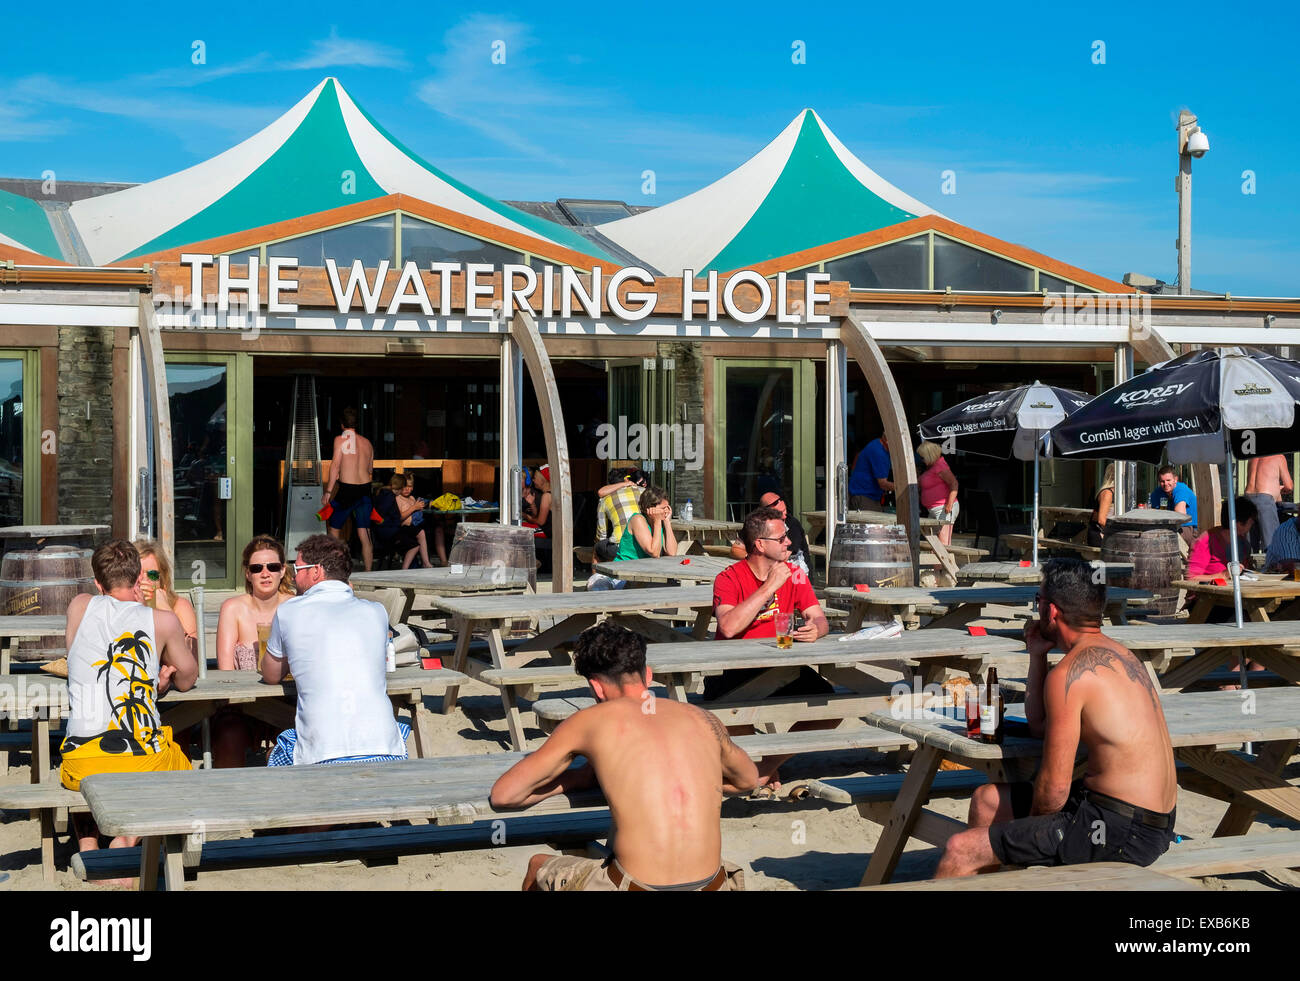 The Watering Hole bar on the beach at Perranporth, Cornwall, UK - Stock Image